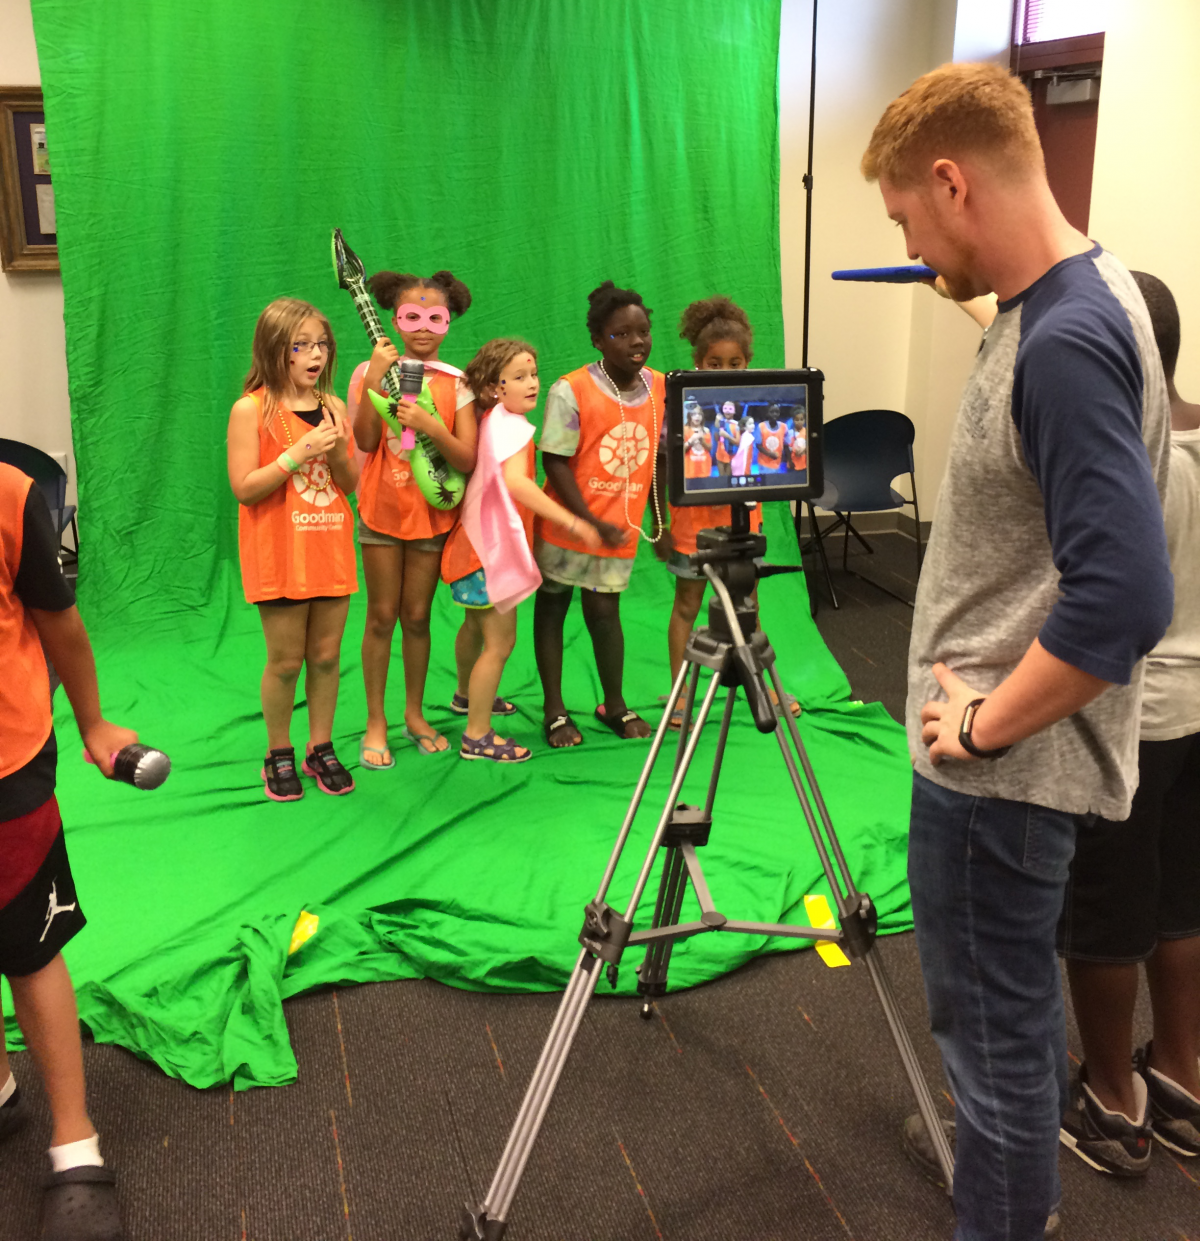 group of girls recording a music video at the library in front of a green screen